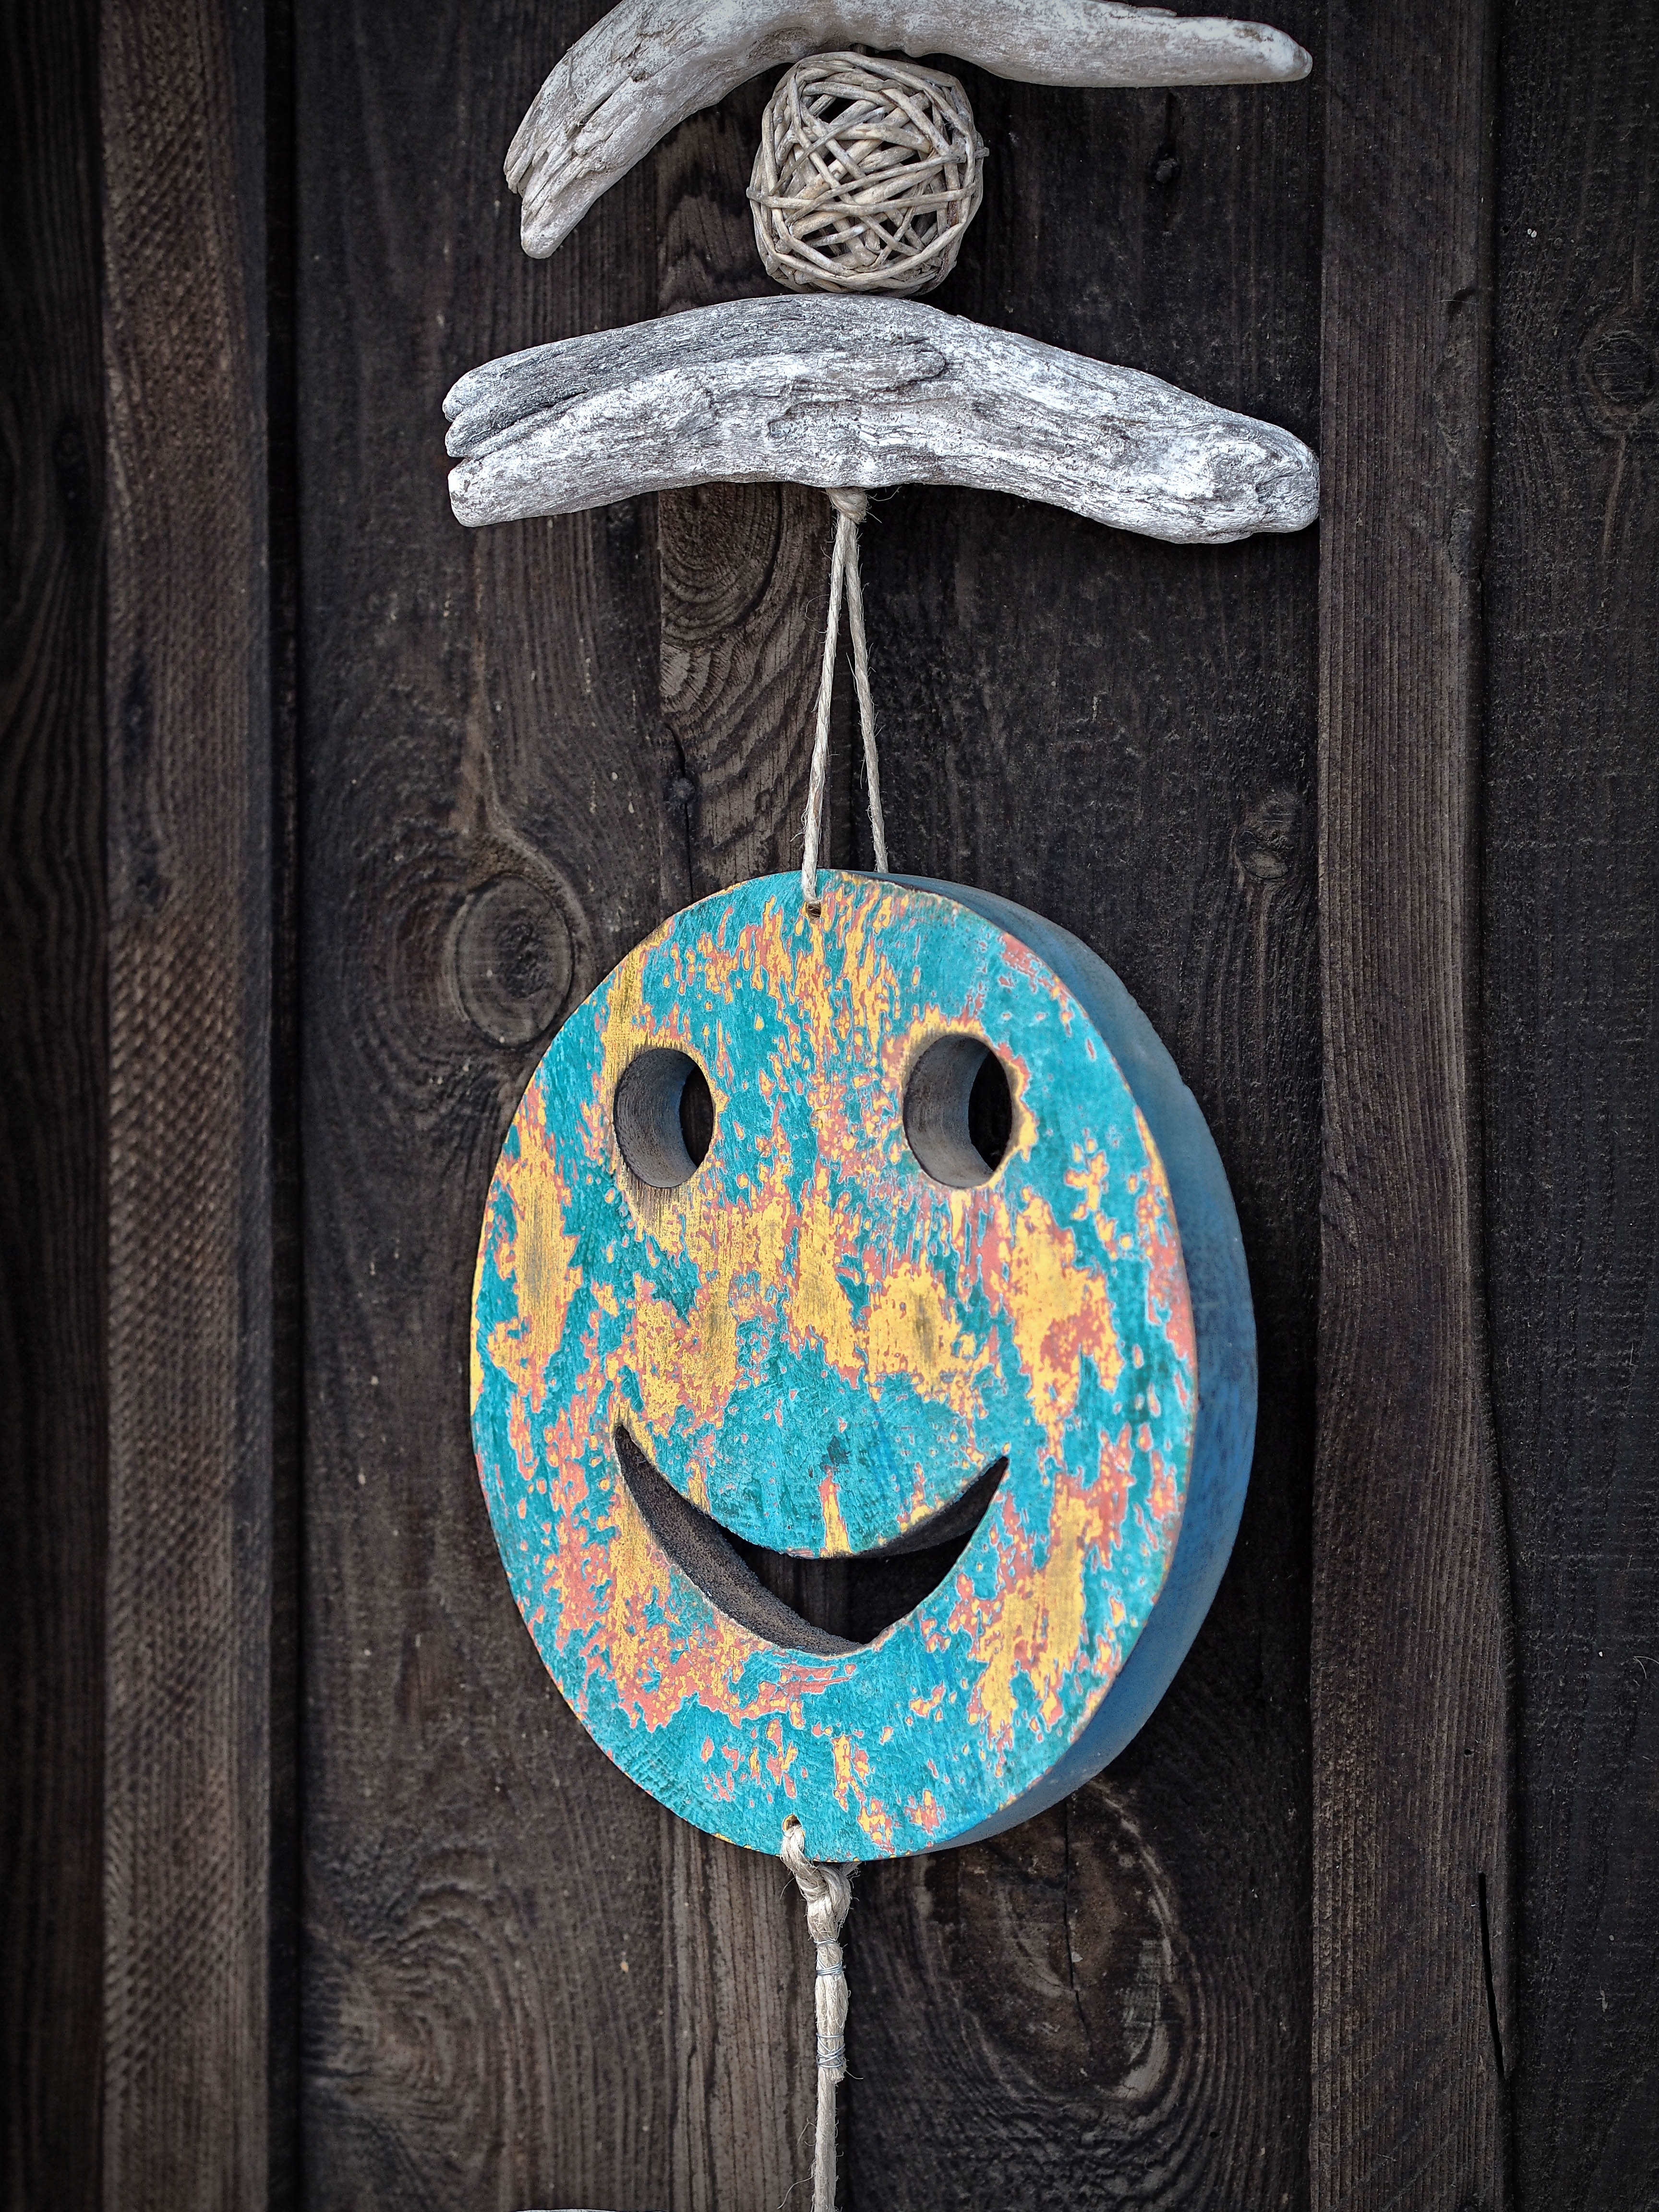 147078 Screensavers and Wallpapers Emoticon for phone. Download Miscellanea, Miscellaneous, Wood, Wooden, Smile, Decoration, Emoticon, Smiley pictures for free